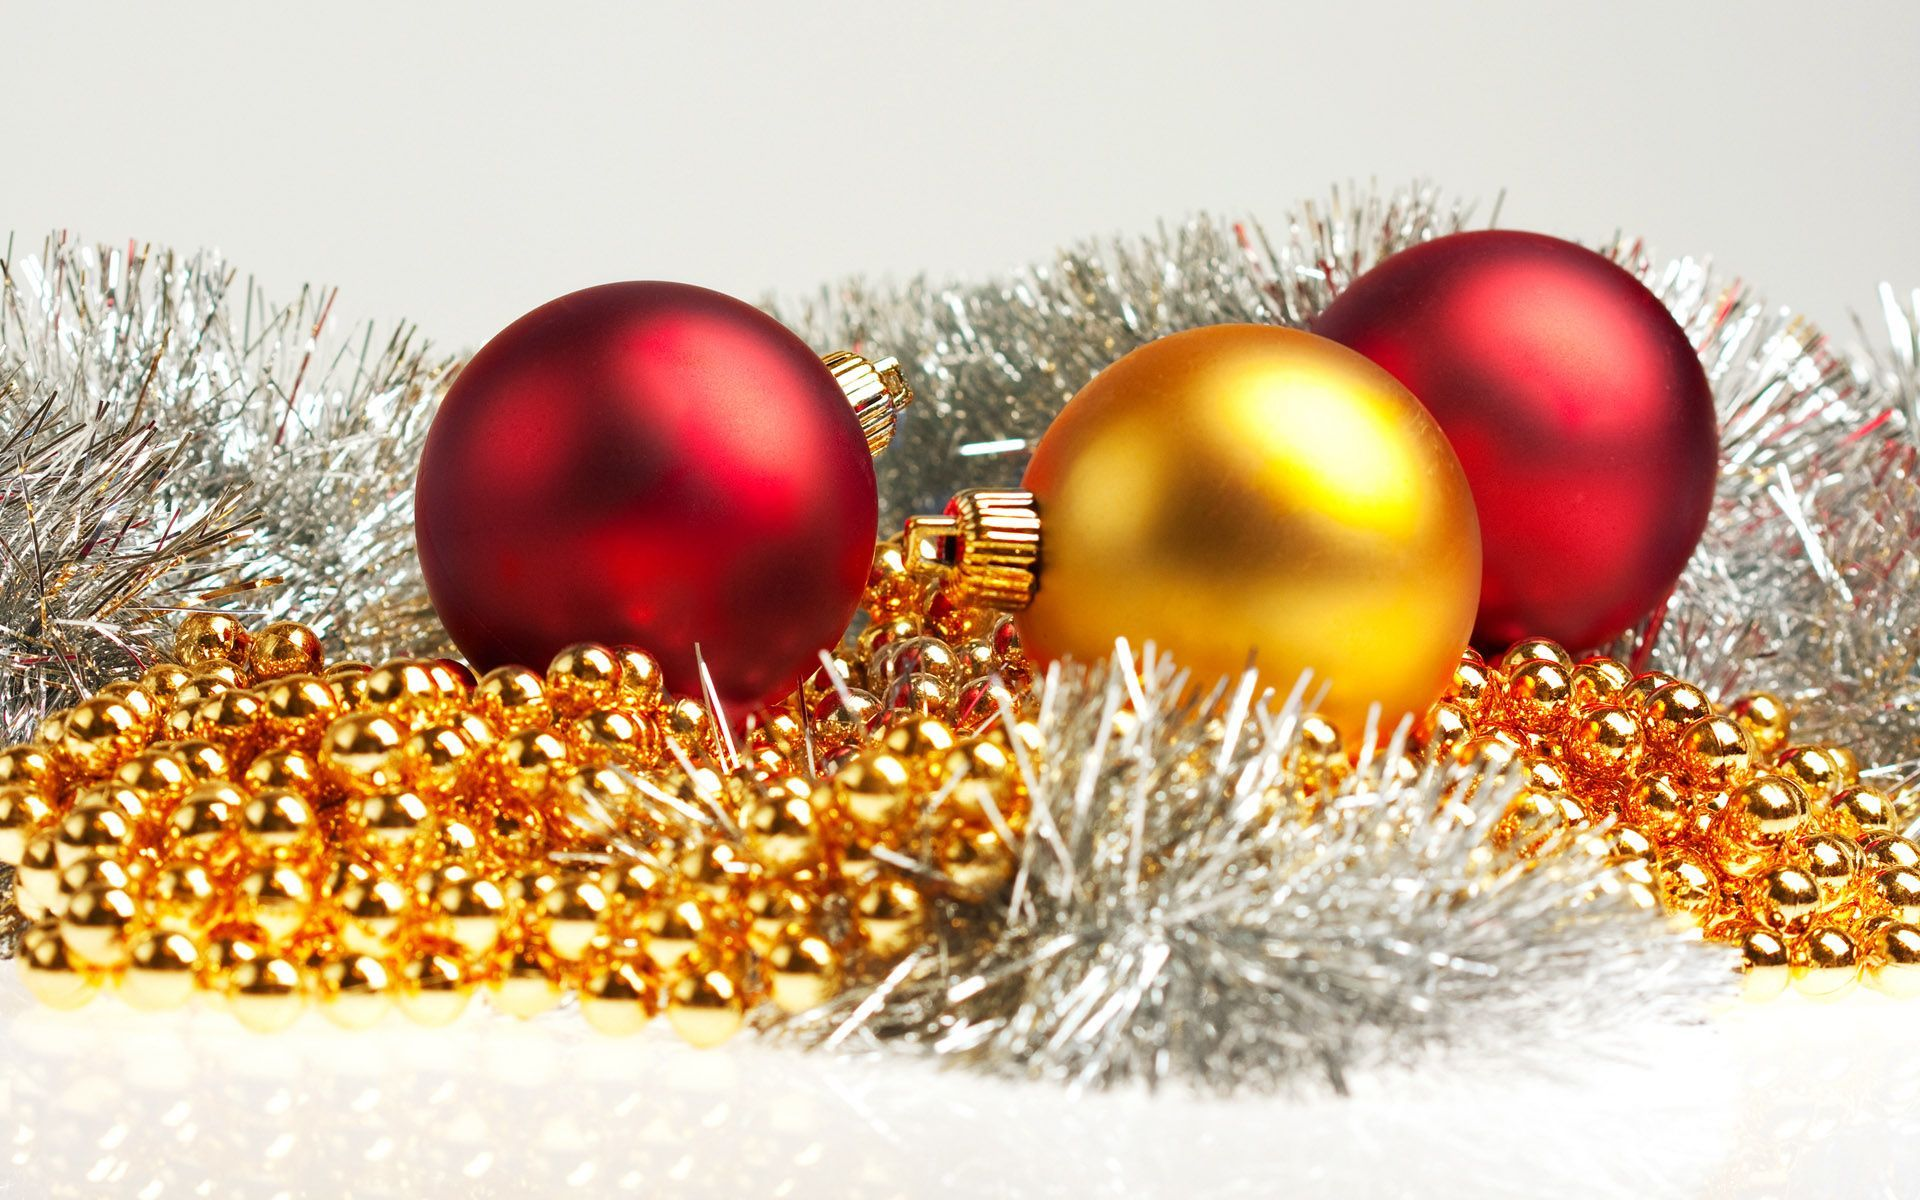 Free Christmas Candles Wallpapers, Top 40 Free Christmas Candles ...